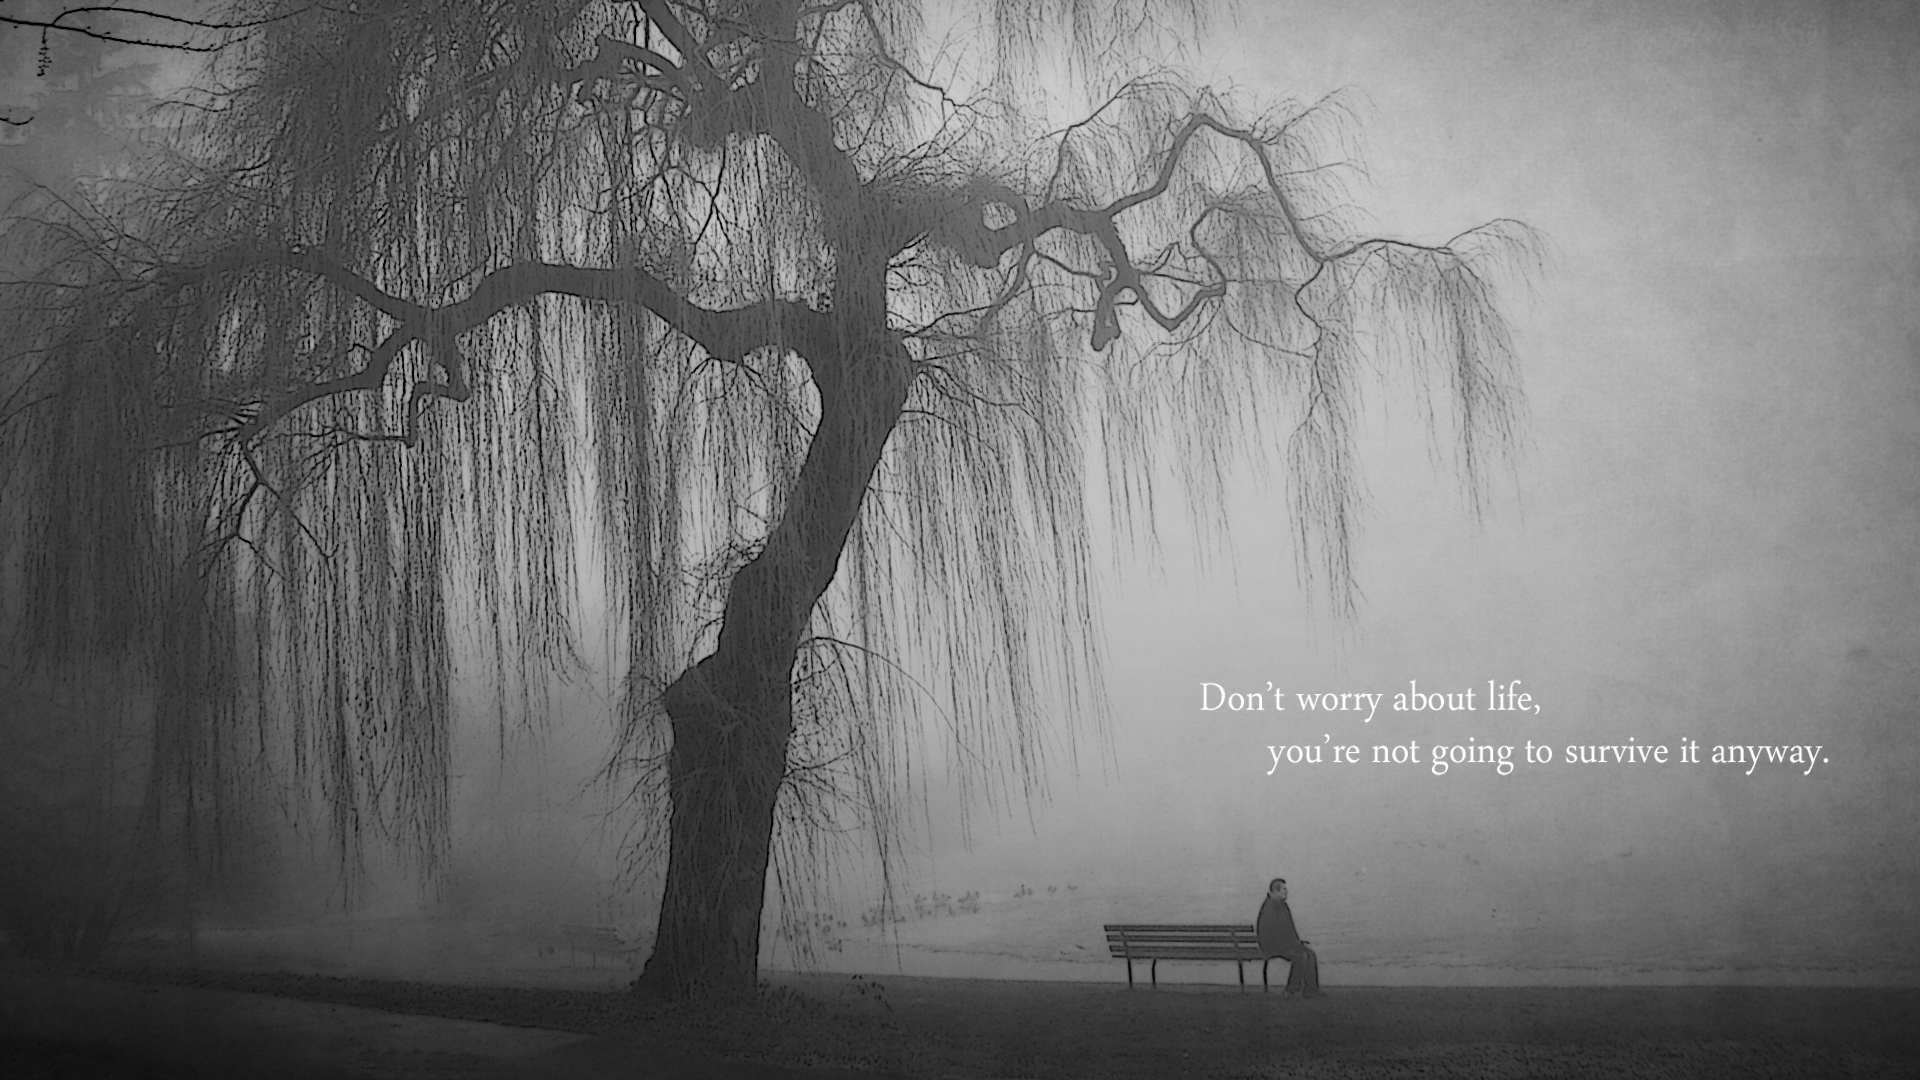 Lonely Quotes (40 wallpapers) - Quotefancy |Loneliness Wallpapers With Quotes